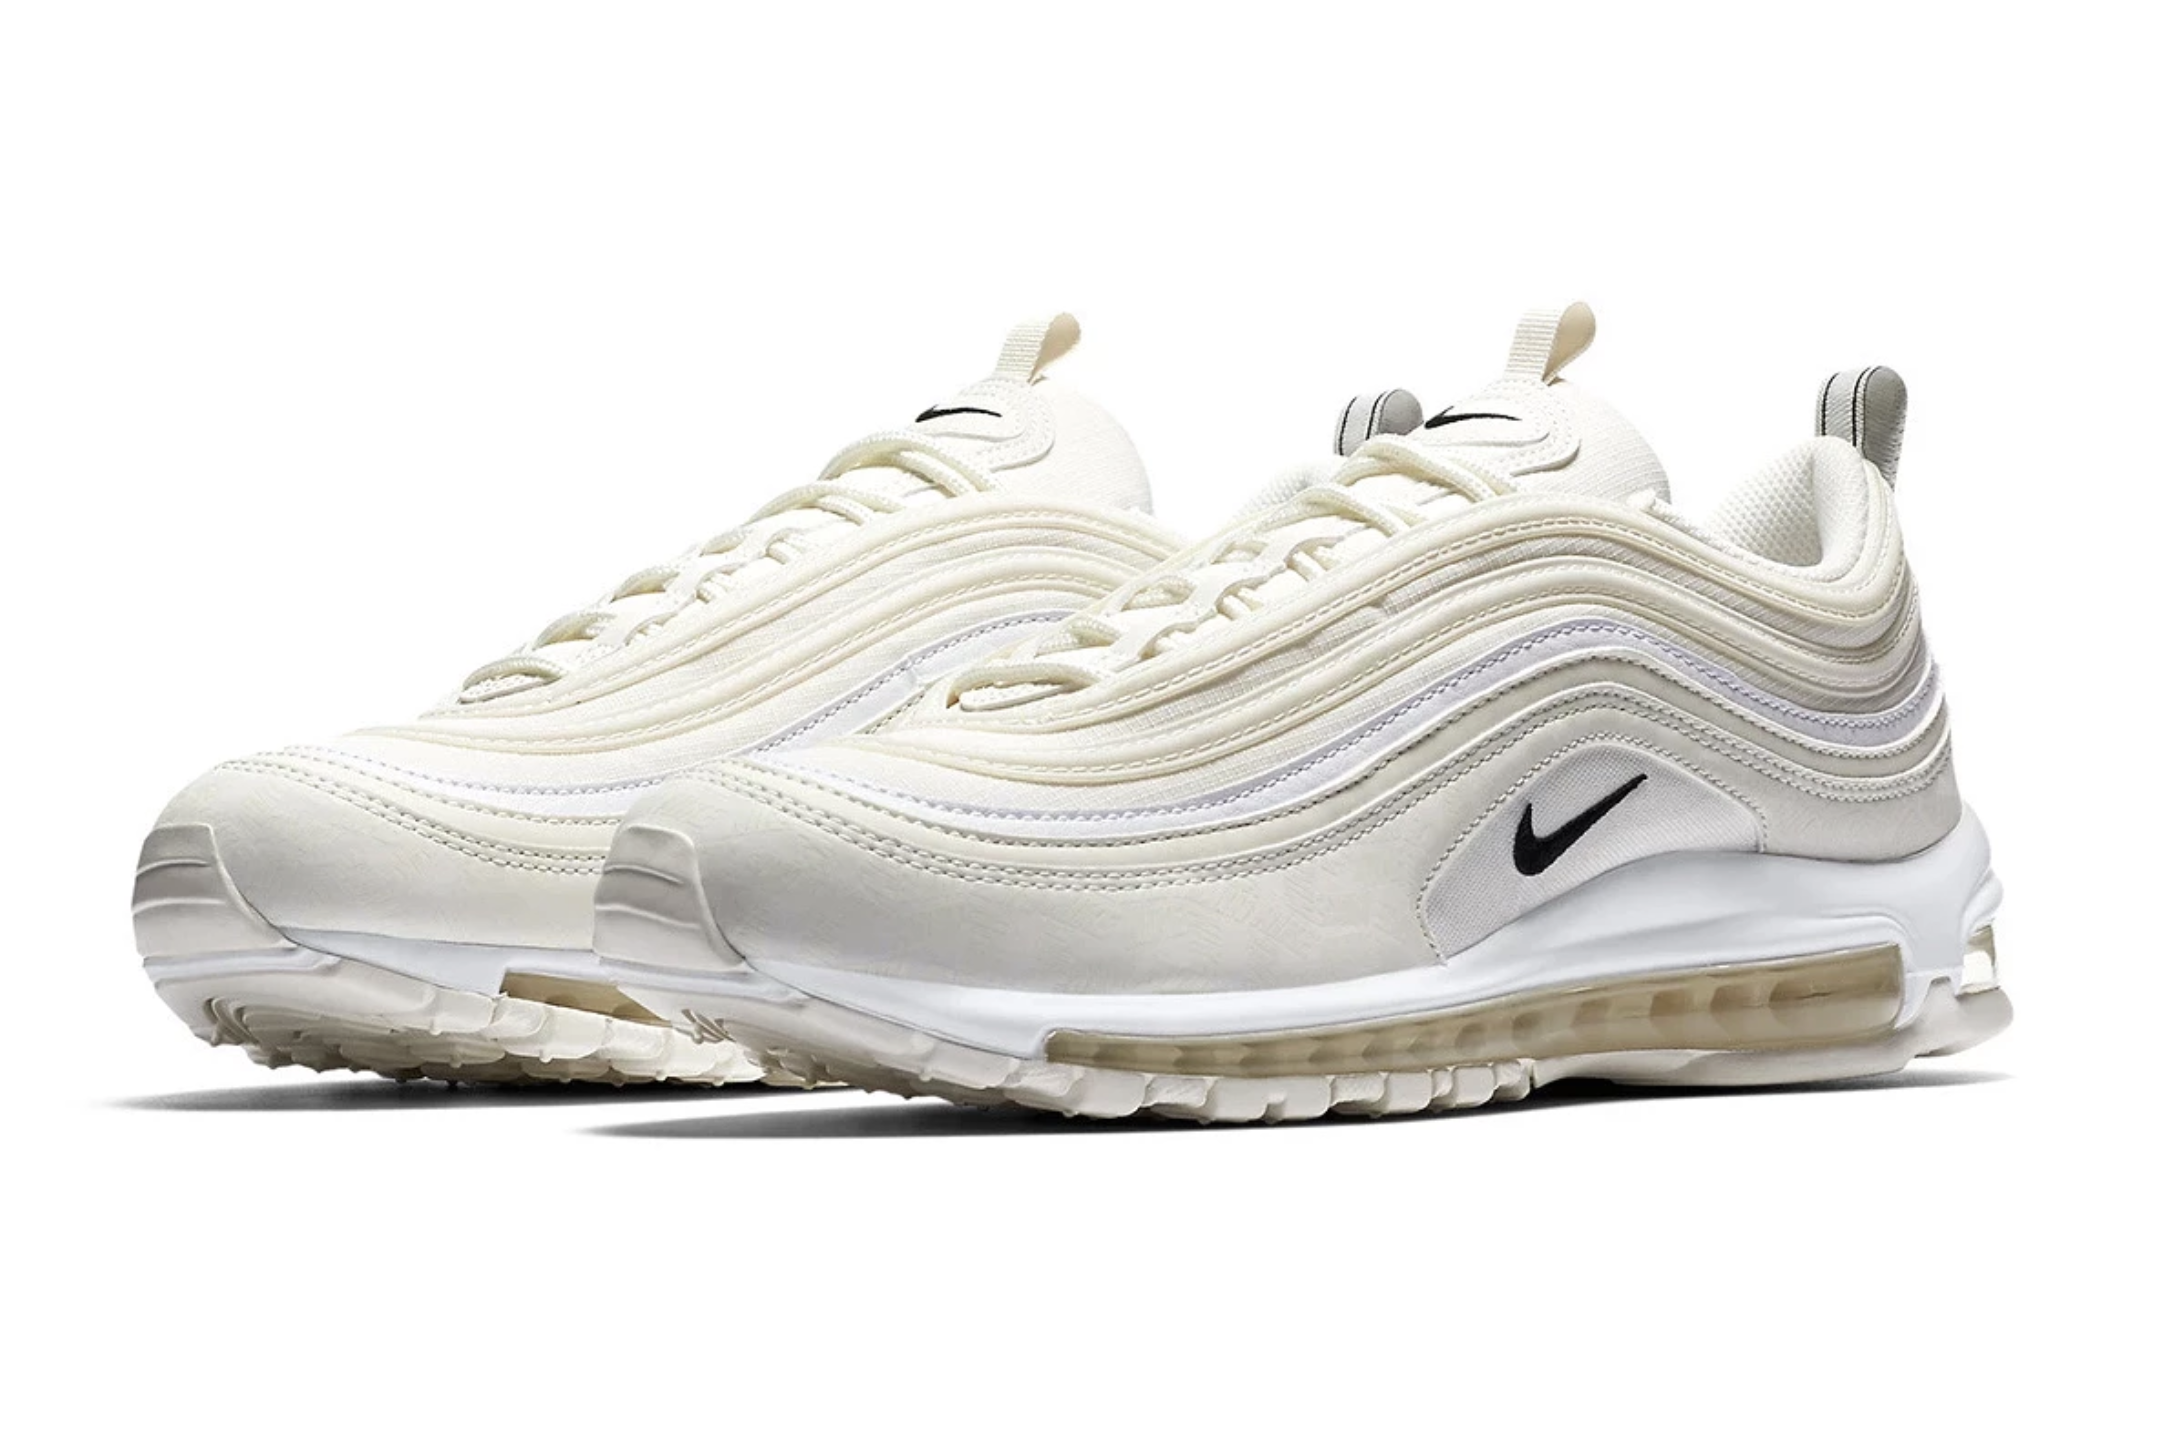 reputable site 42609 7a9b0 ... This Nike Air Max 97 Has Secret Detailing That You Need To See ...